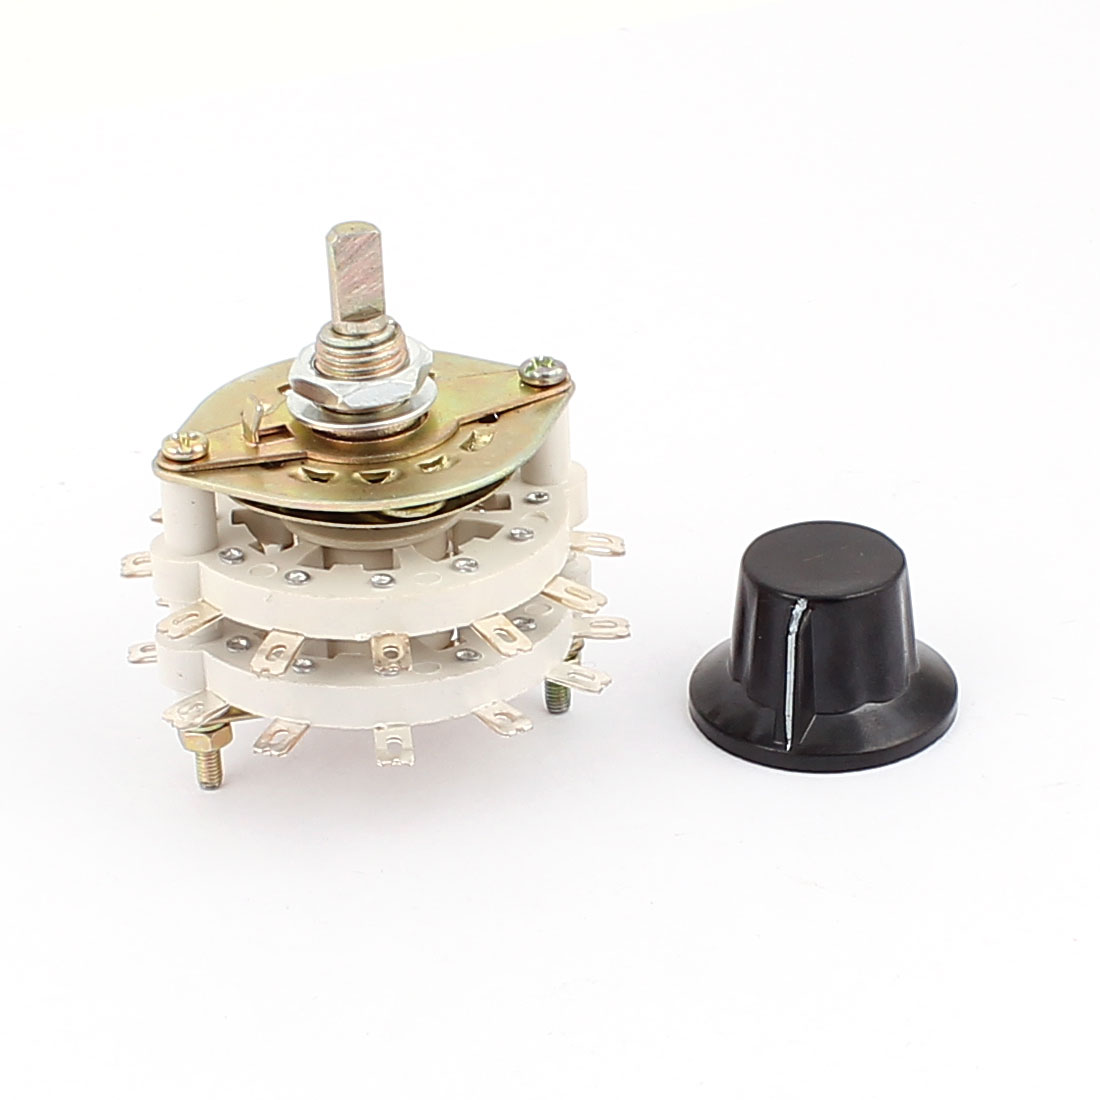 6mm D Shaft 2P11T 2 Pole 11 Position Ceramic Band Channel Rotary Switch Selector - image 2 of 2